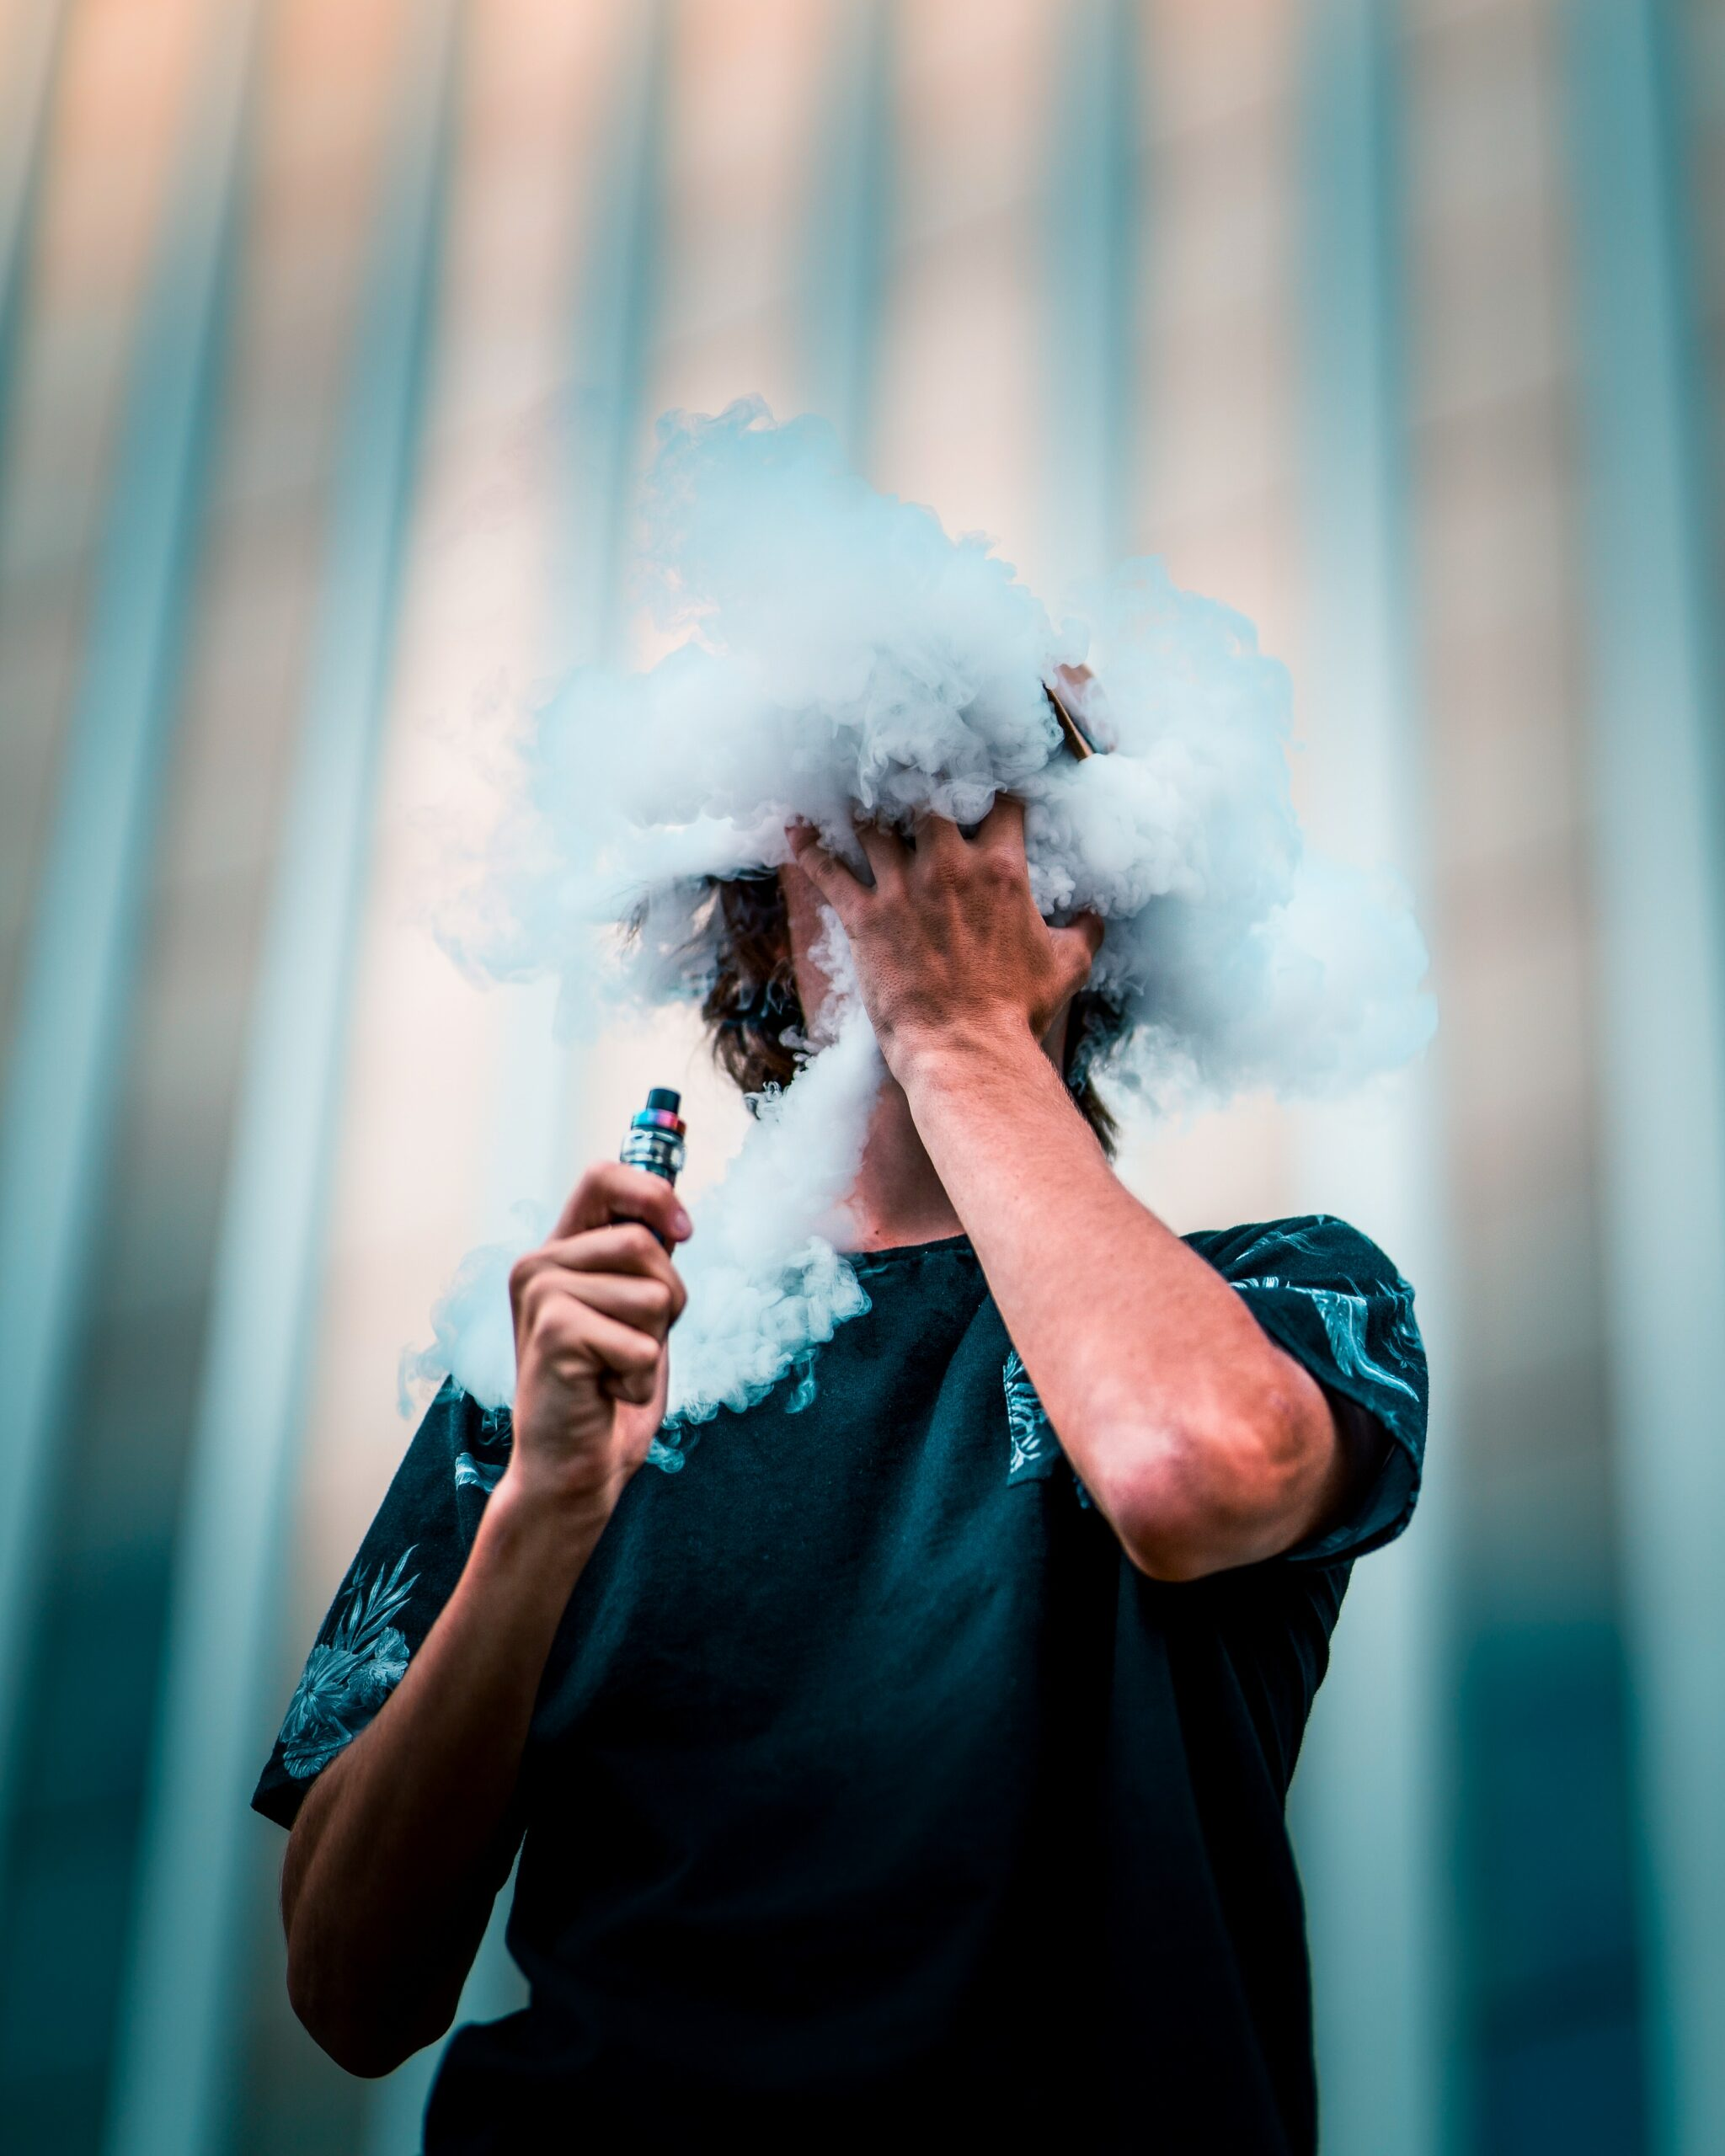 a man vapes cannabis and his head is in the clouds